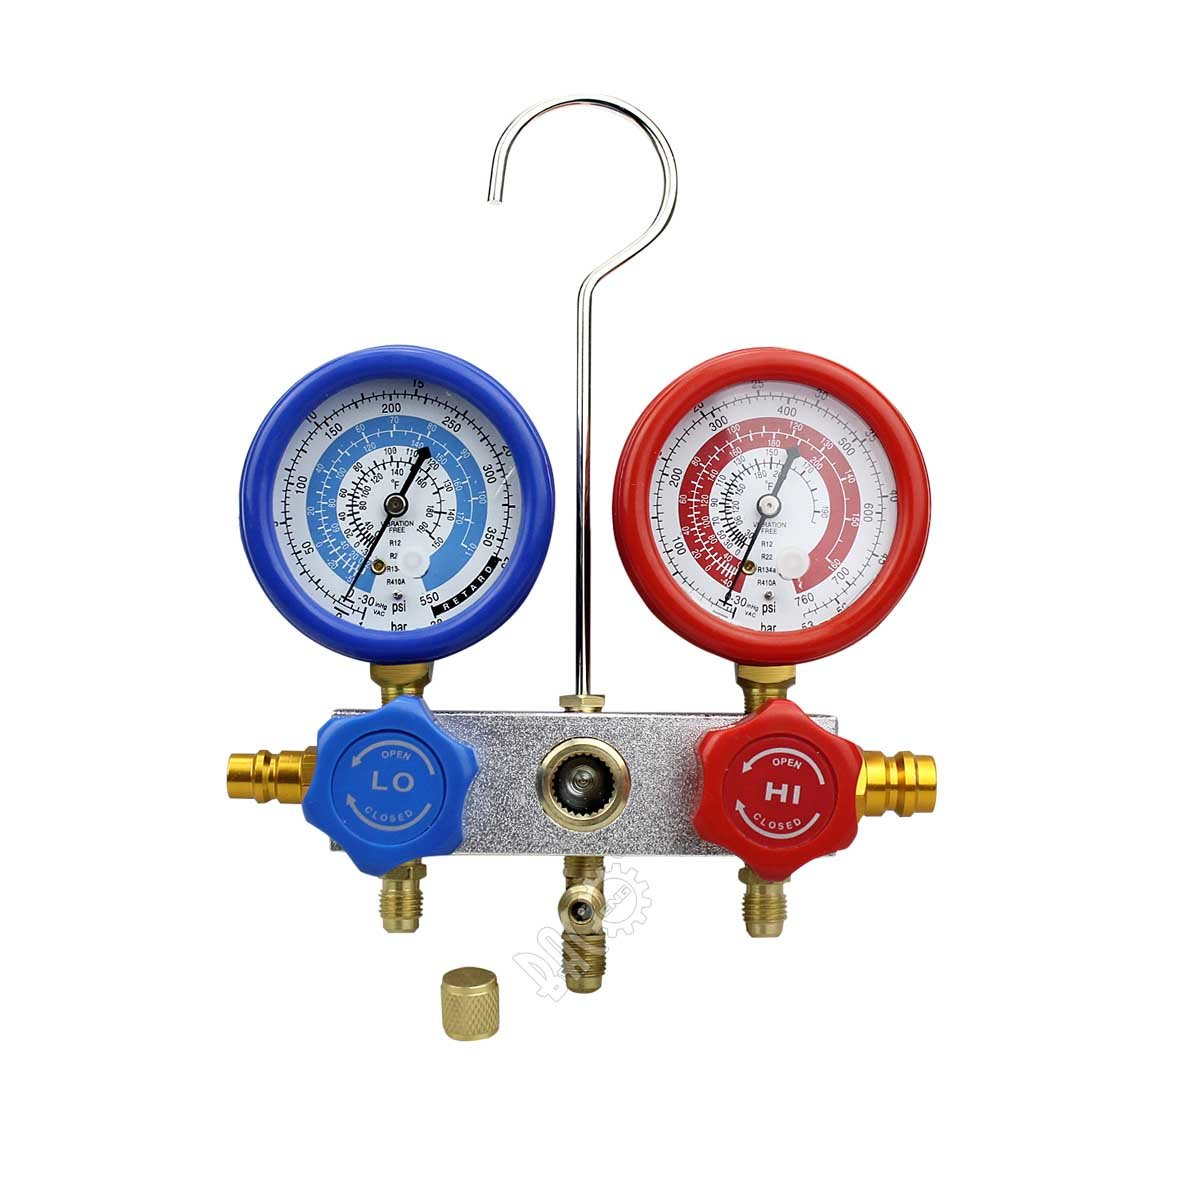 BACOENG 5FT AC Diagnostic Manifold Freon Gauge Set for R22 R134a R12 R410A Refrigerants with Couplers, 3-60'' Hoses and Standard 1/4'' Fittings by BACOENG (Image #3)